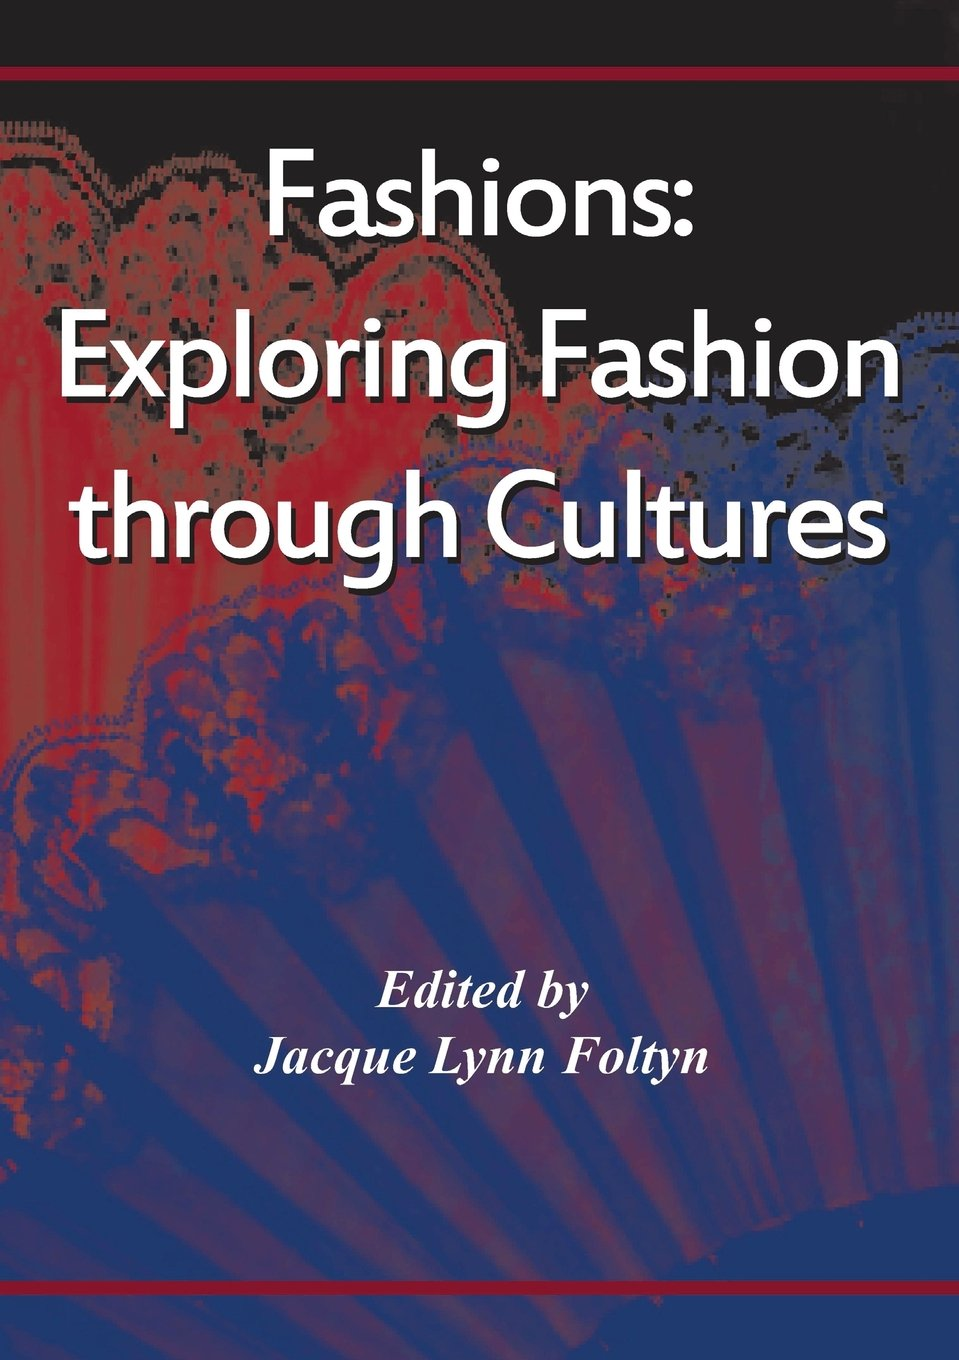 Fashions: Exploring Fashion through Cultures